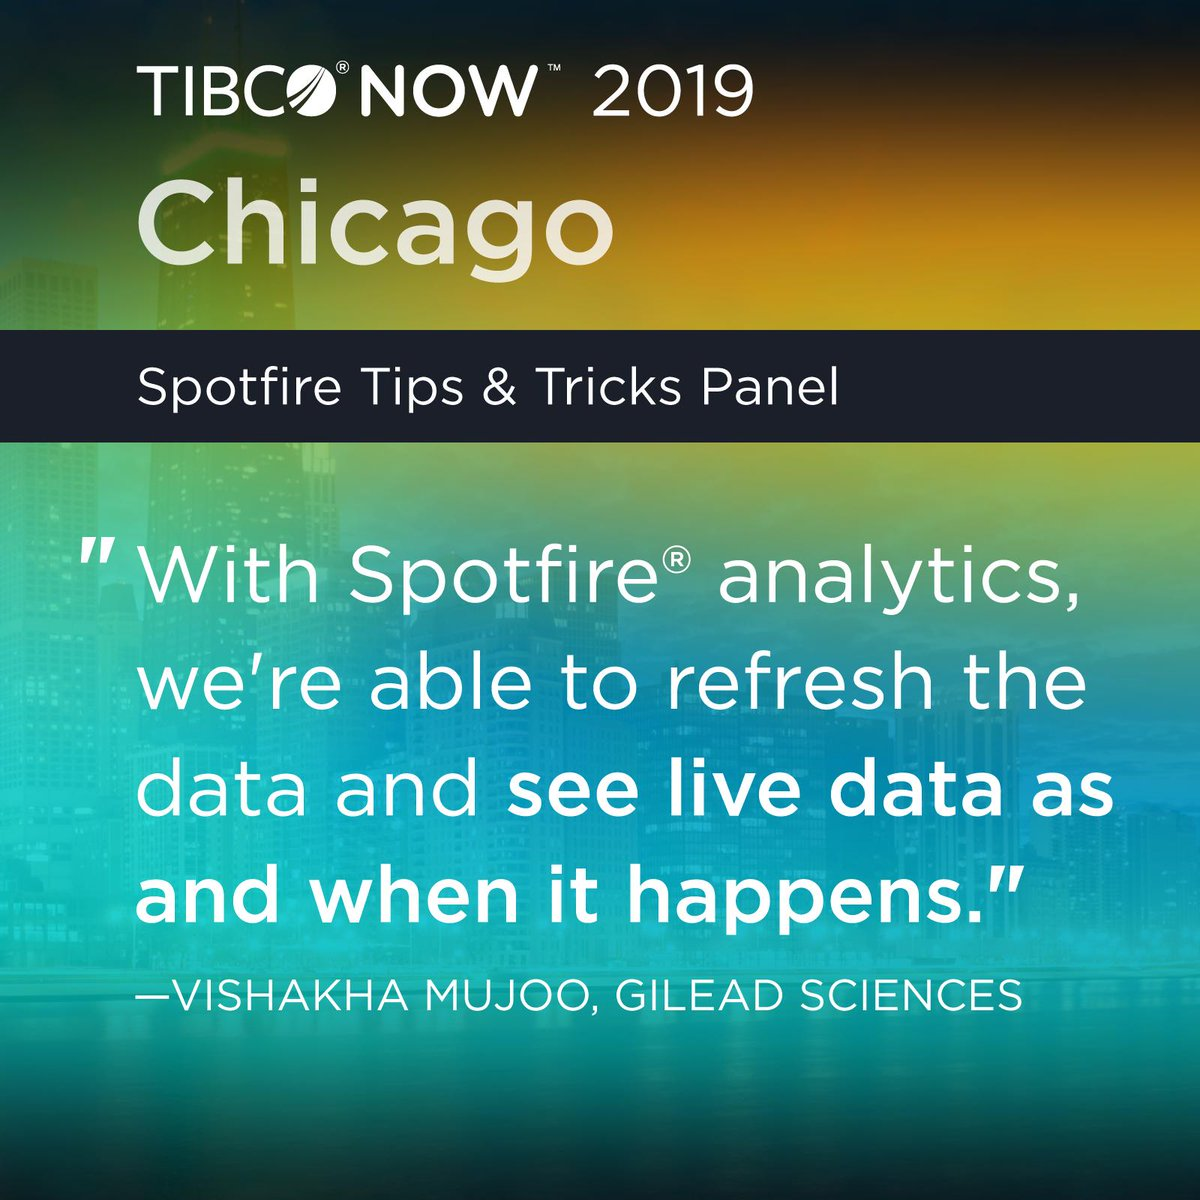 Top 5 Emerging Analytics Trends from TIBCO NOW Chicago